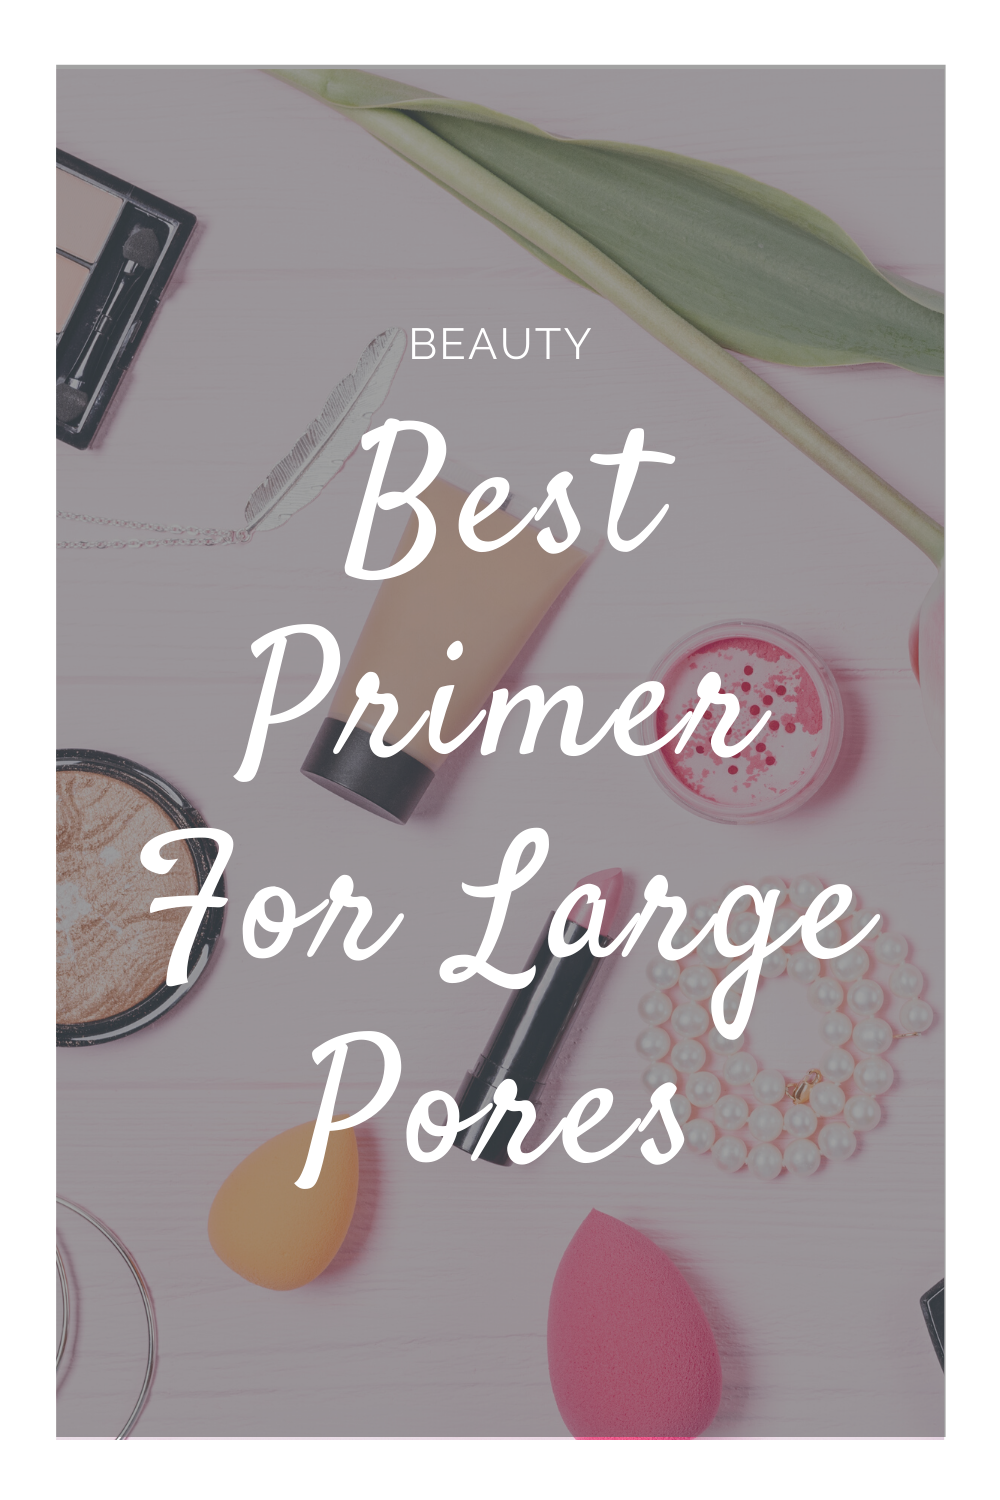 Best Primer For Large Pores Hello Taee in 2020 Best